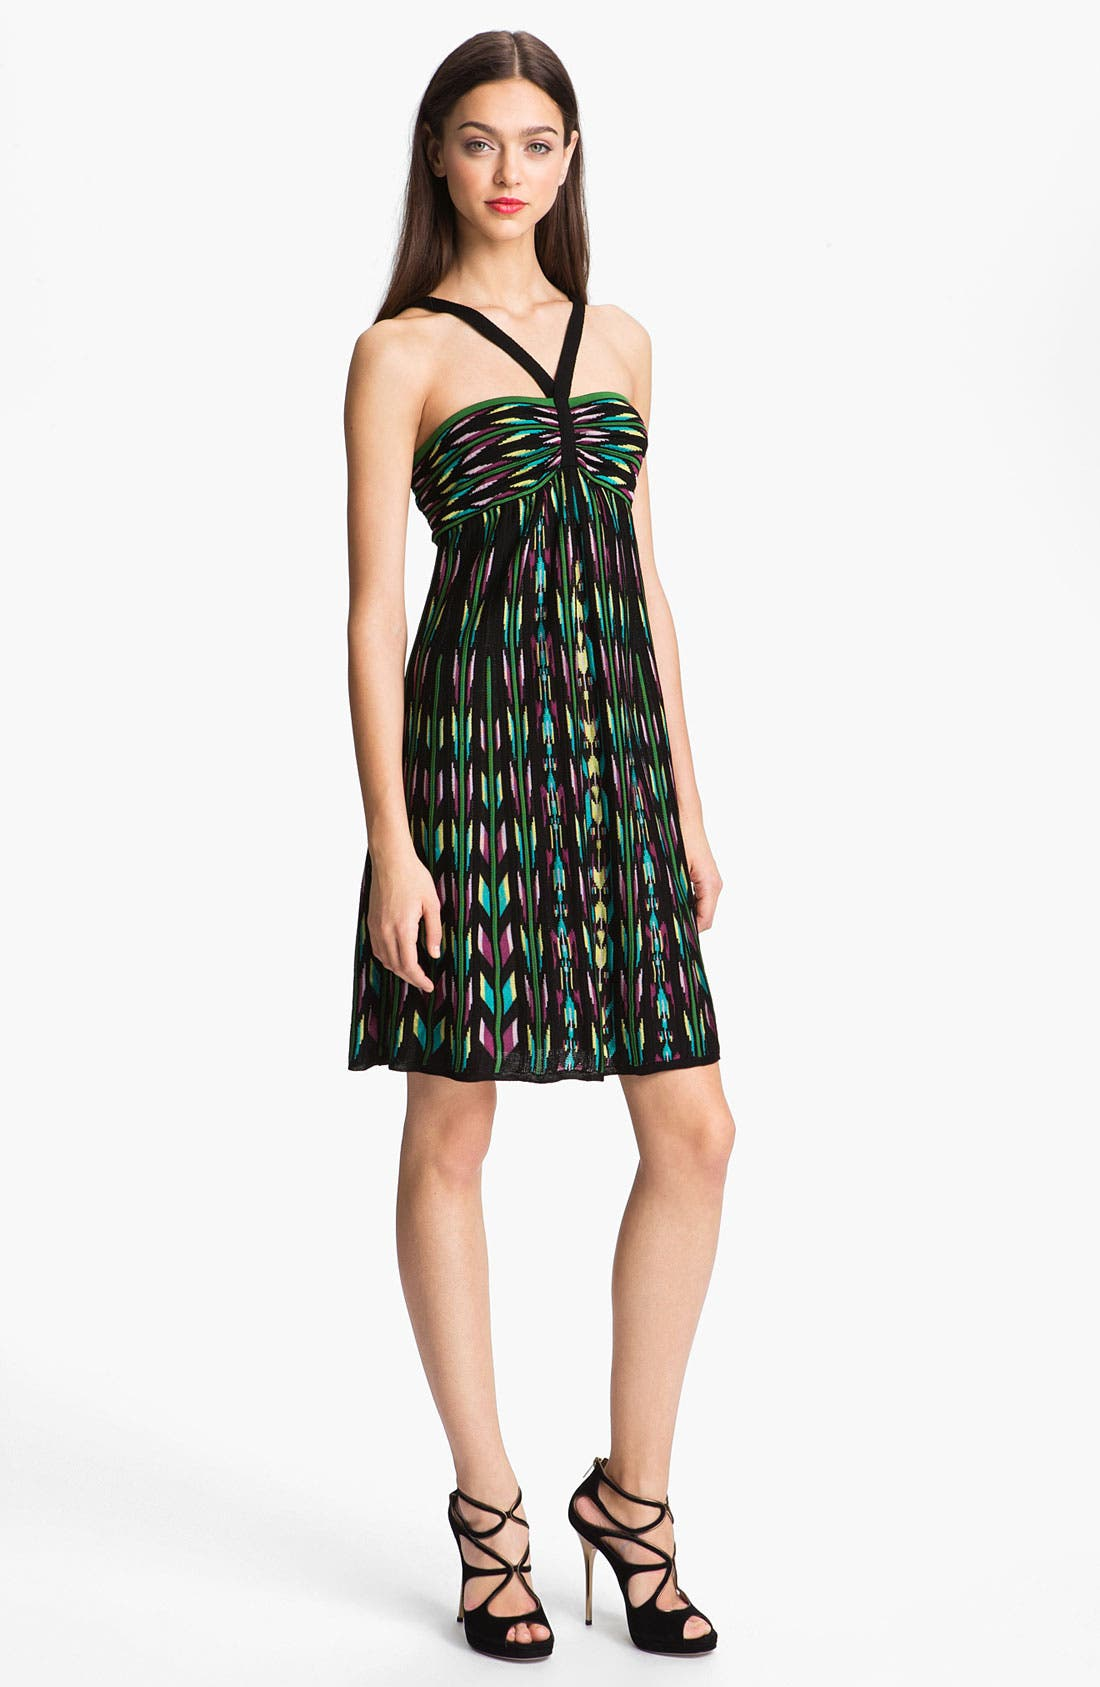 Alternate Image 1 Selected - M Missoni Dress & Accessories